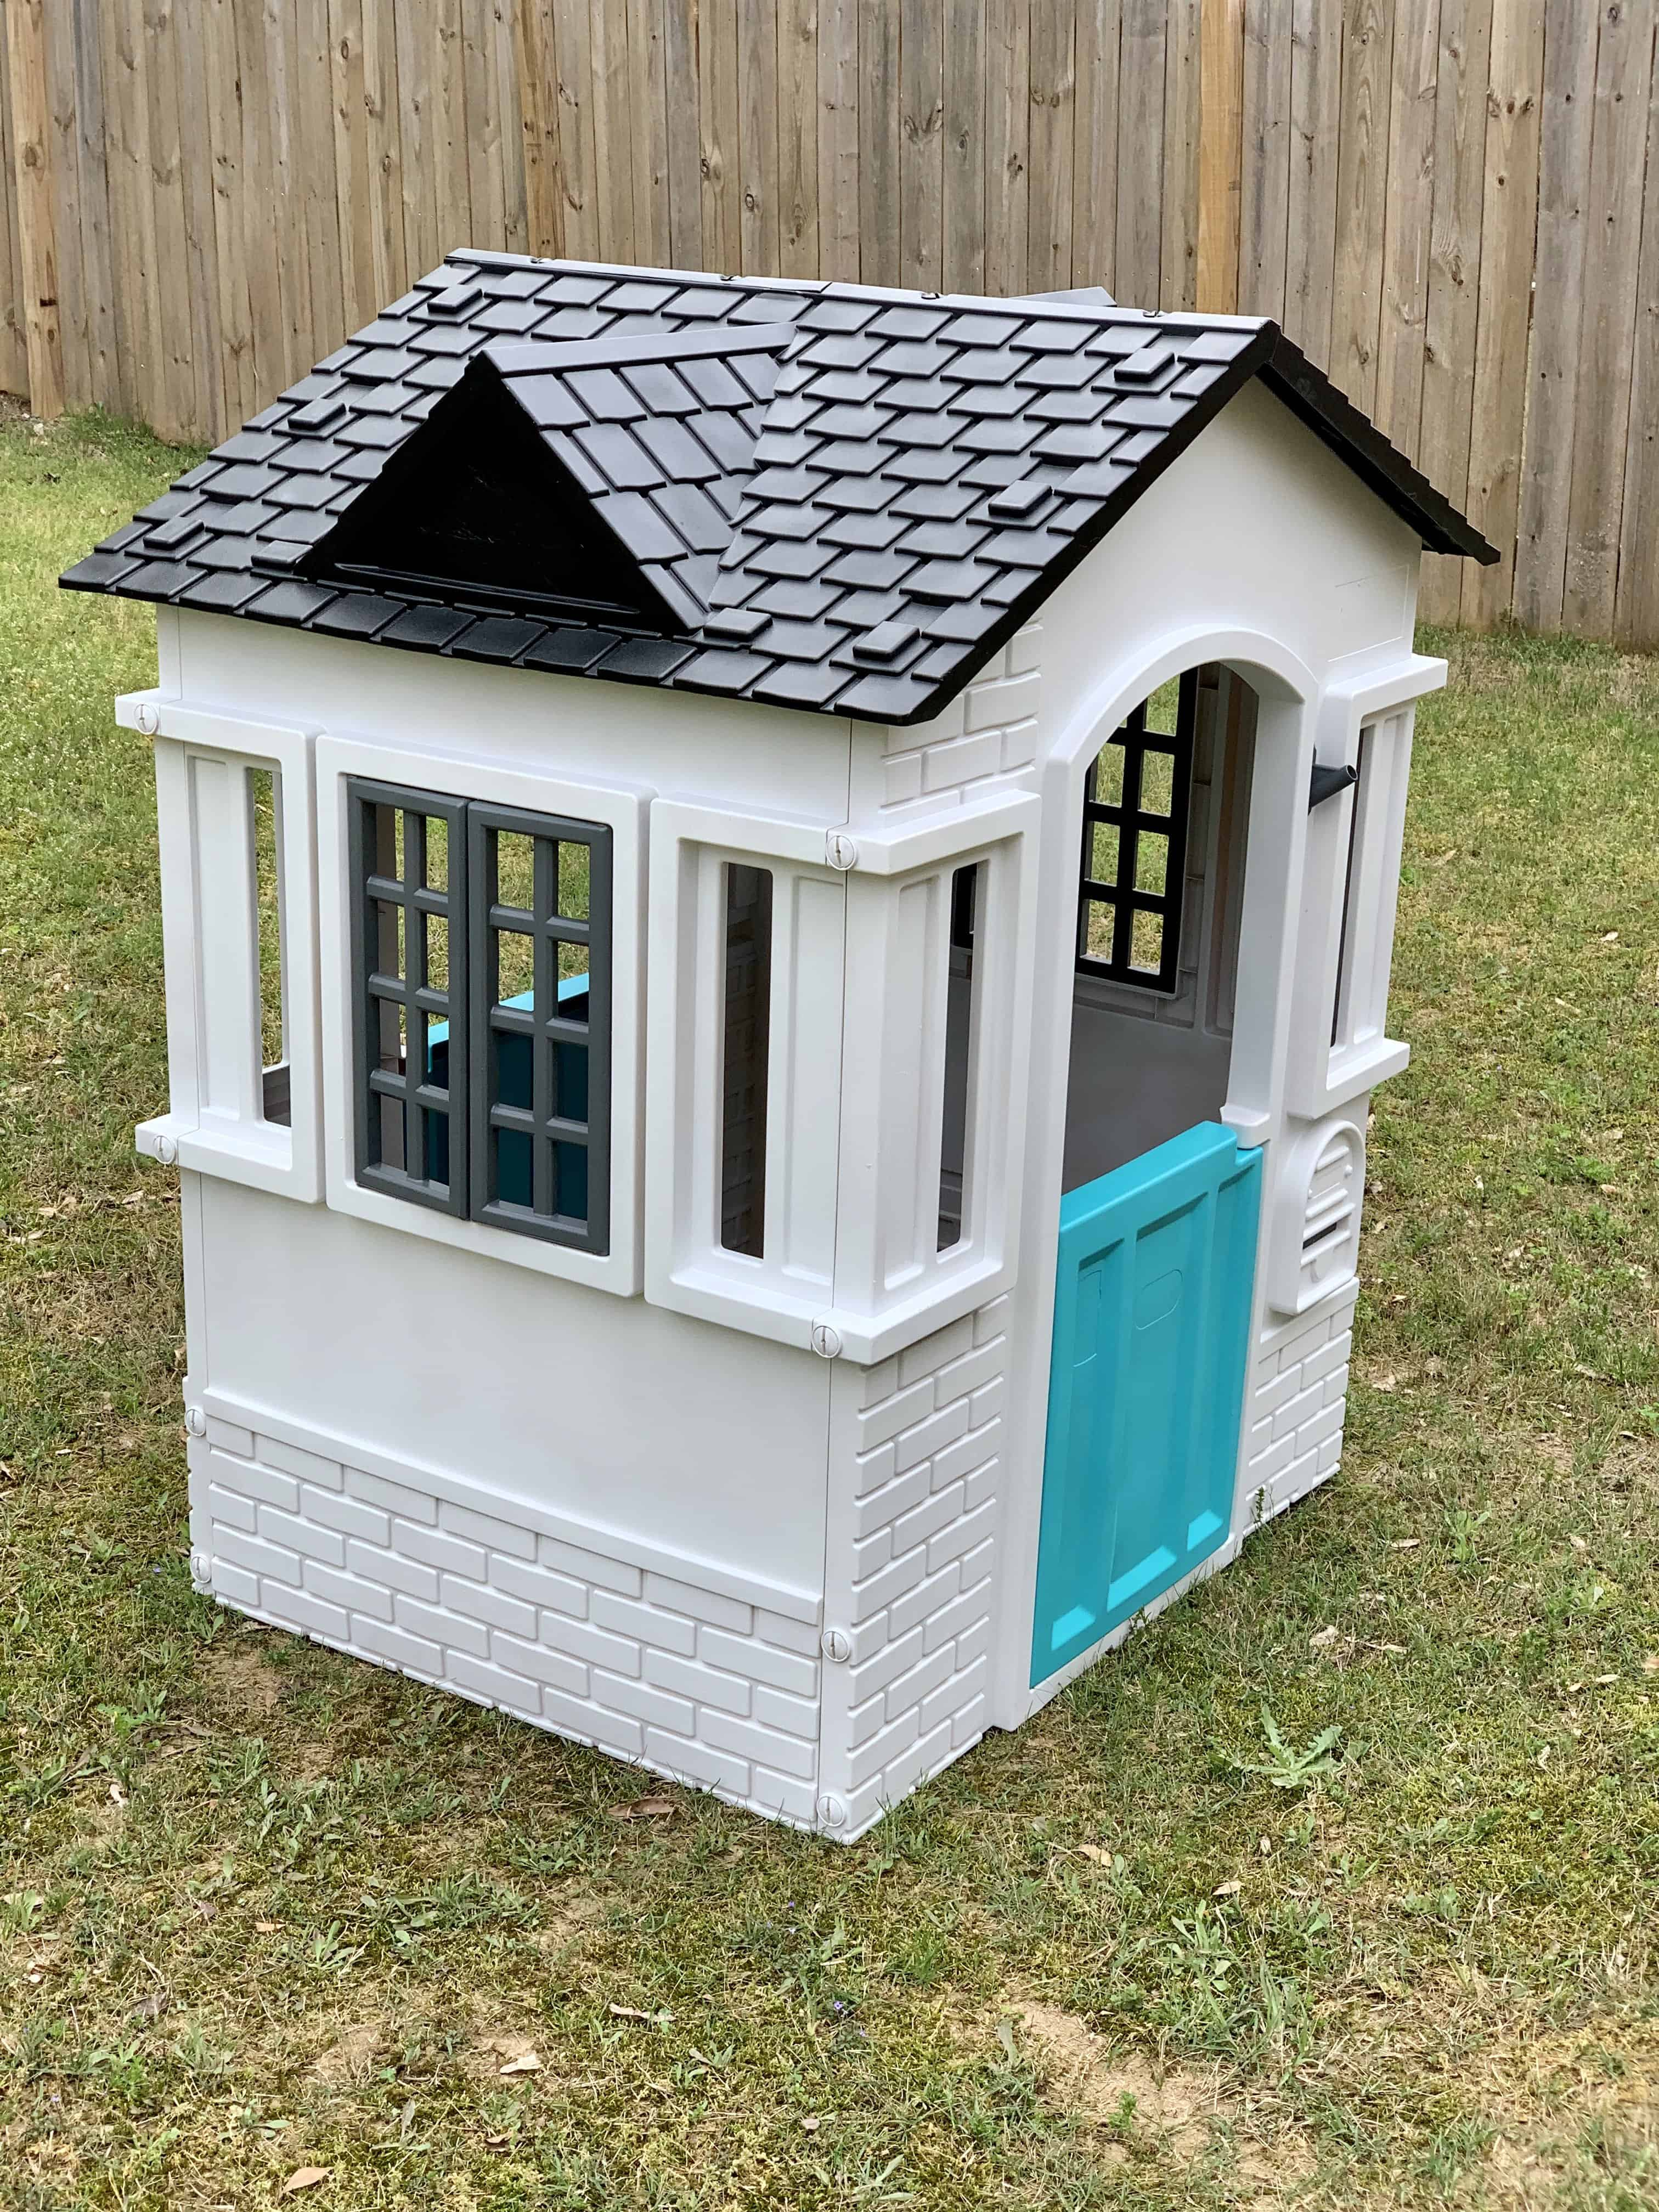 How to Makeover a Plastic Playhouse